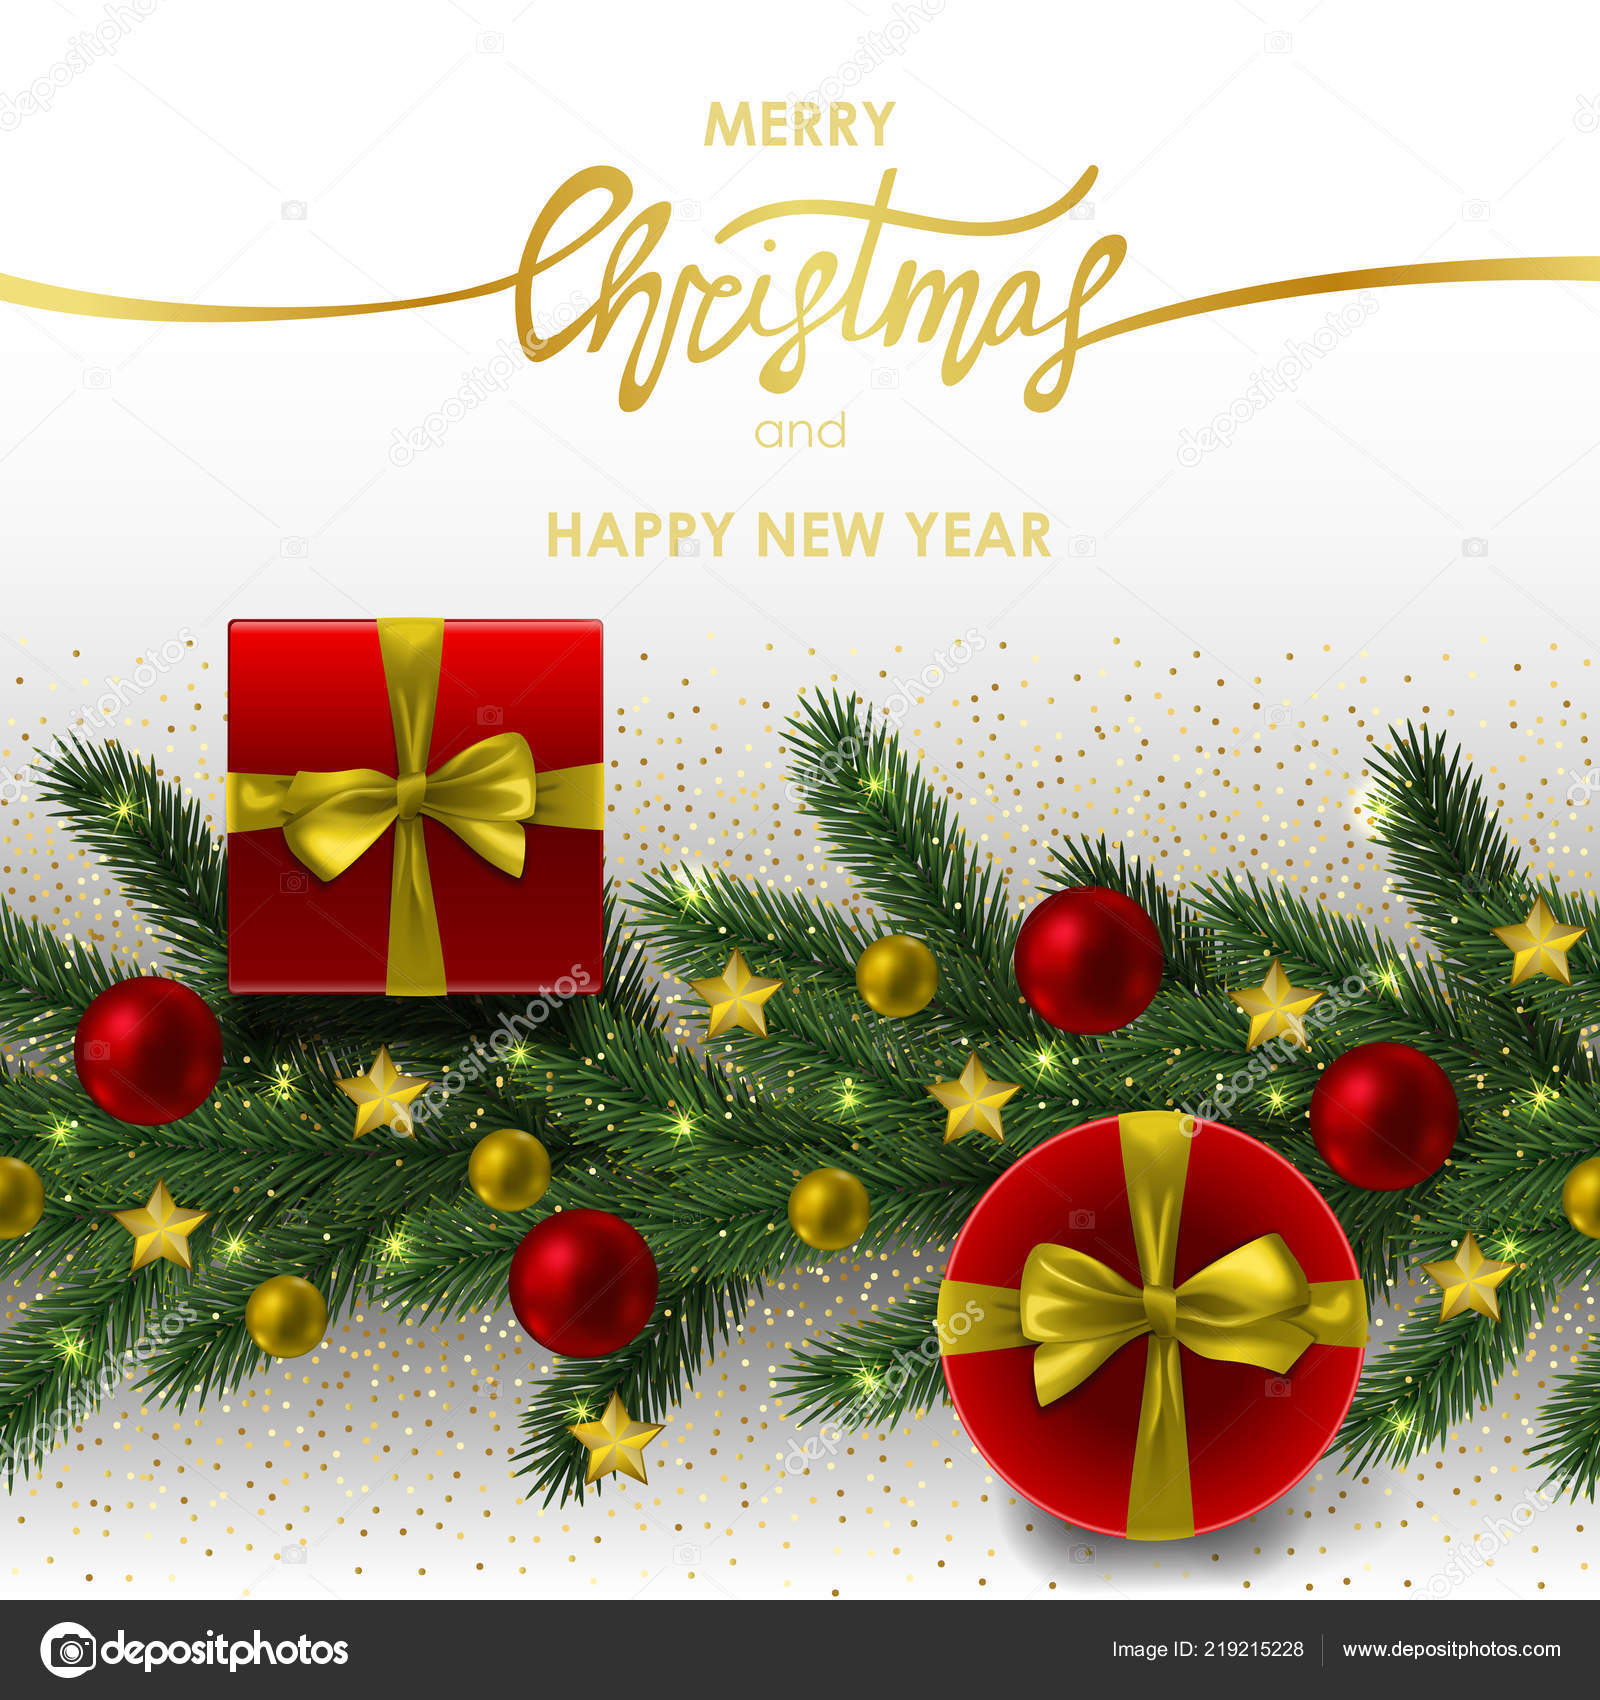 merry christmas and happy new year invitation card with gold geometric frame on white background template with fir tree template for greeting